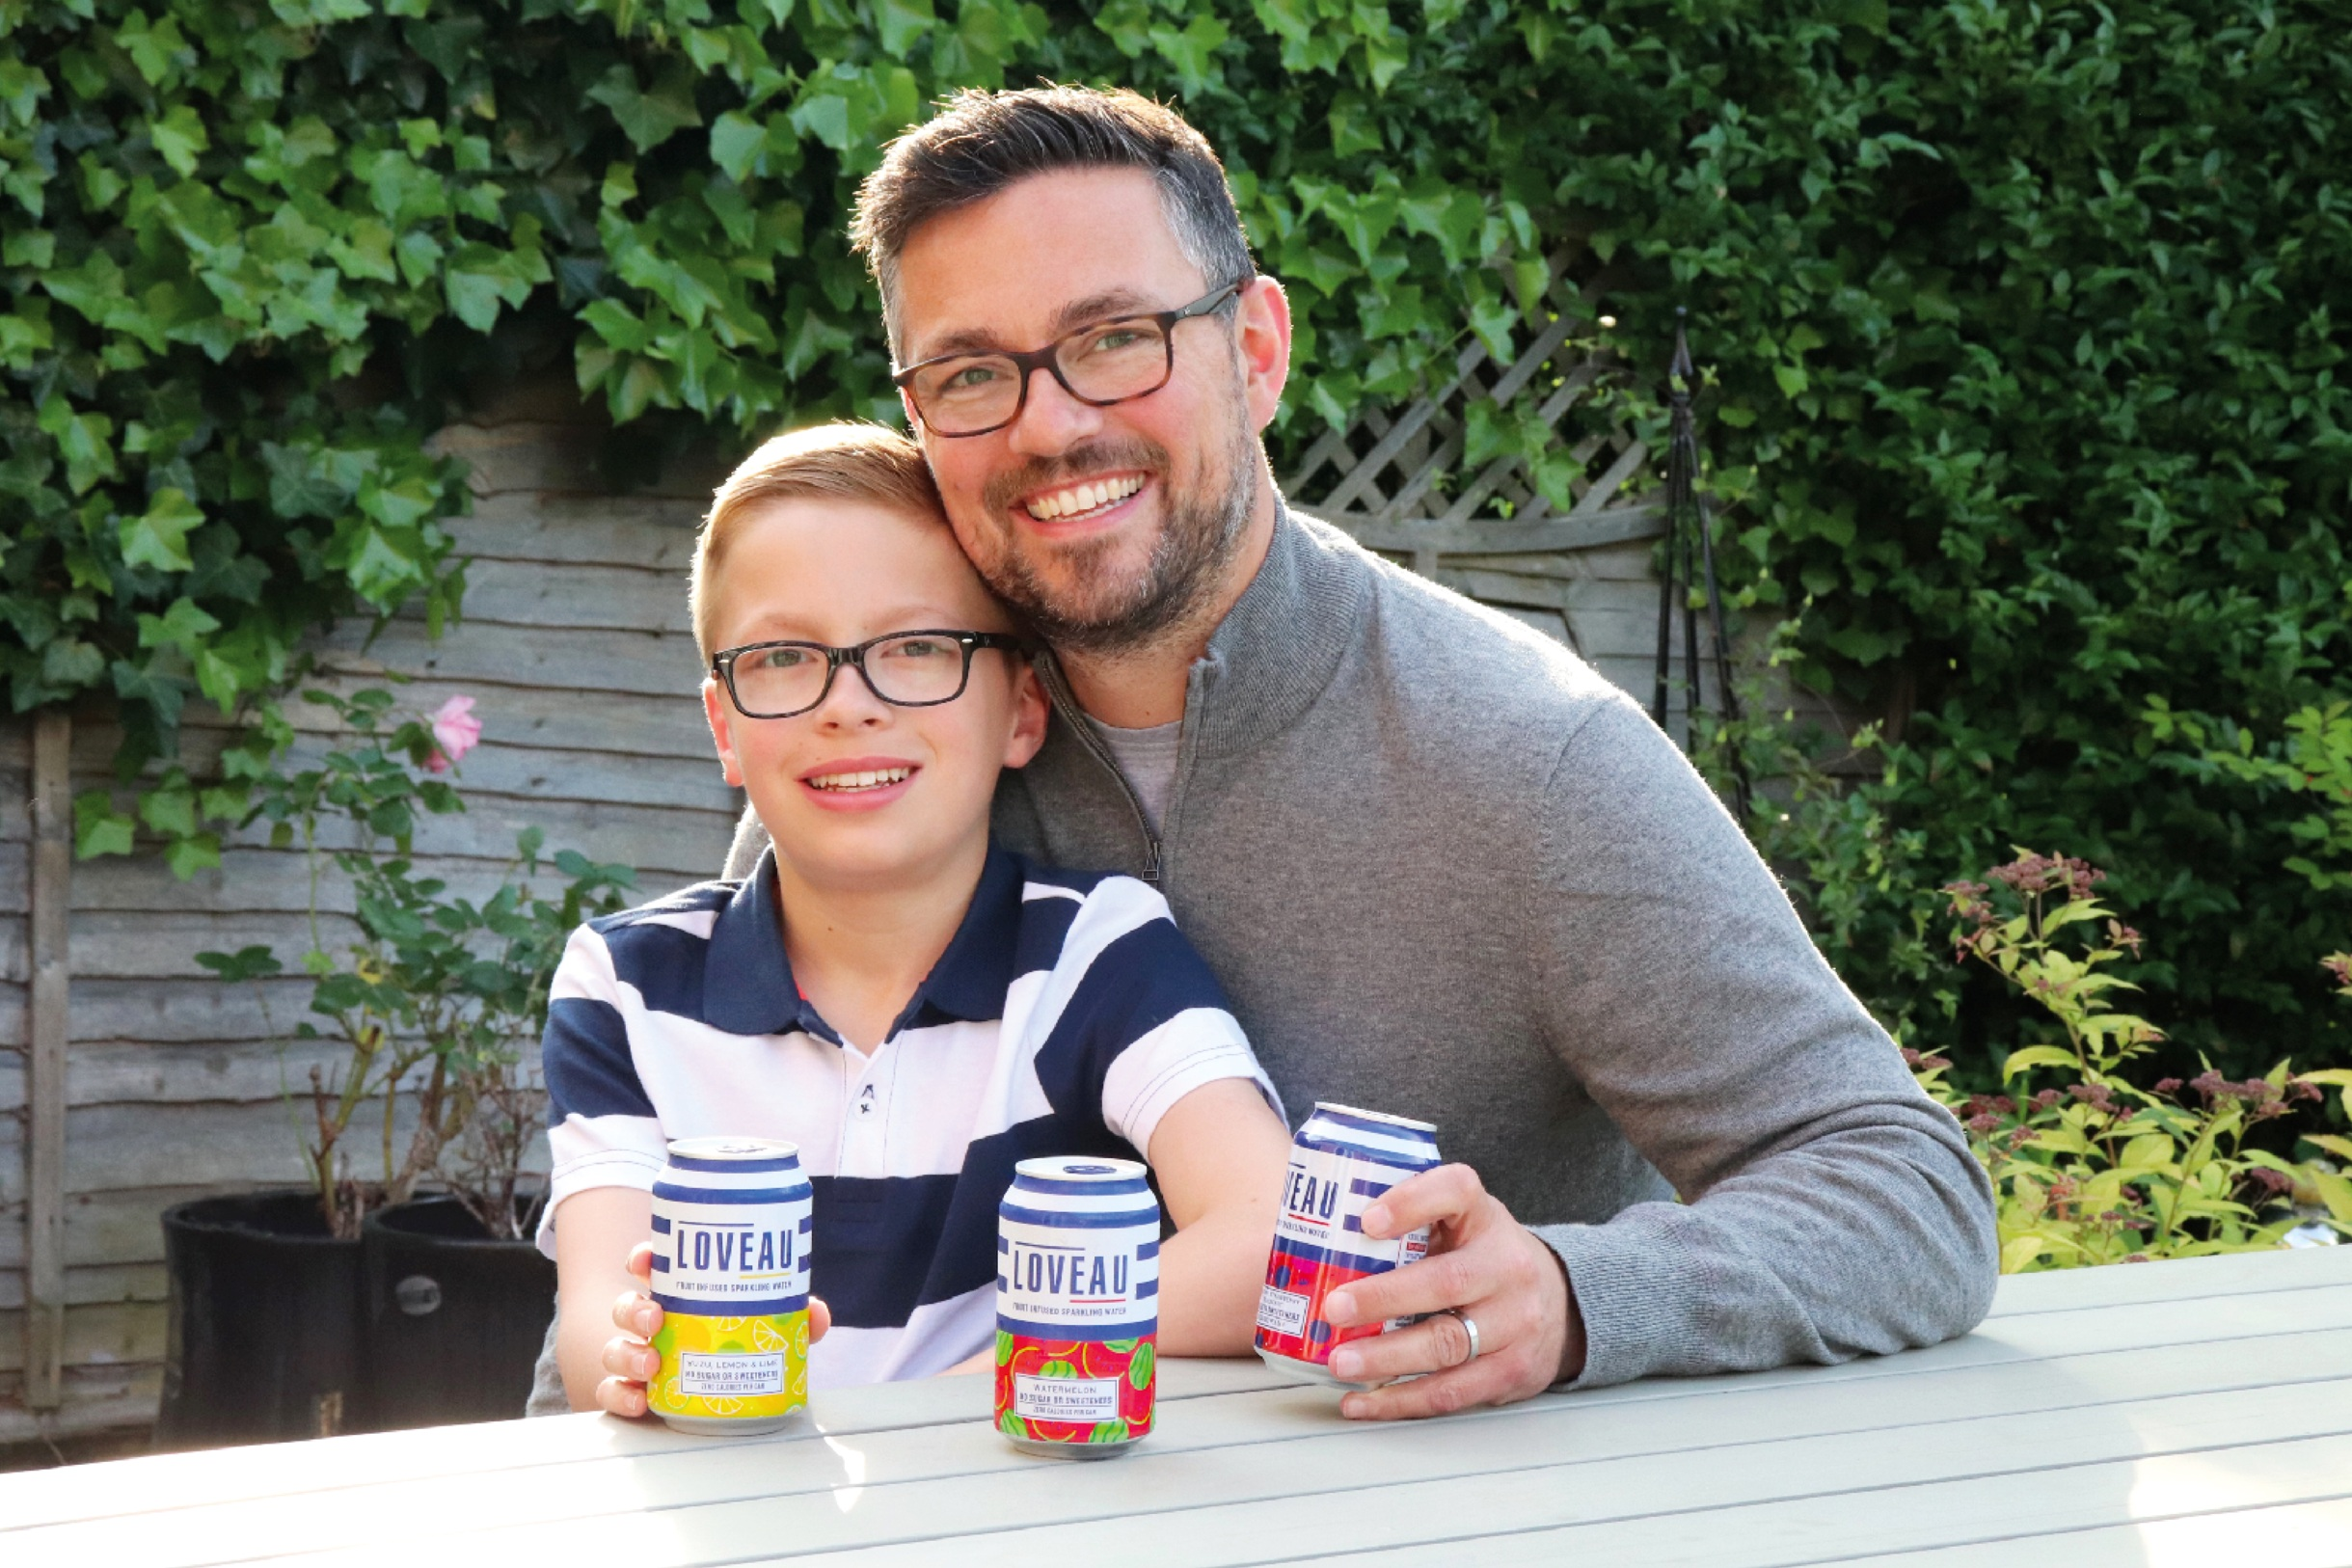 OUR INSPIRATION - The idea for making a drink free from sugar or sweeteners came when Ollie was diagnosed with Type 1 diabetes at the age of 8. Dad, Simon, along with his colleagues Ian and Ade, decided to make a great alternative to sugary fizz - something that could be a positive choice for anyone!